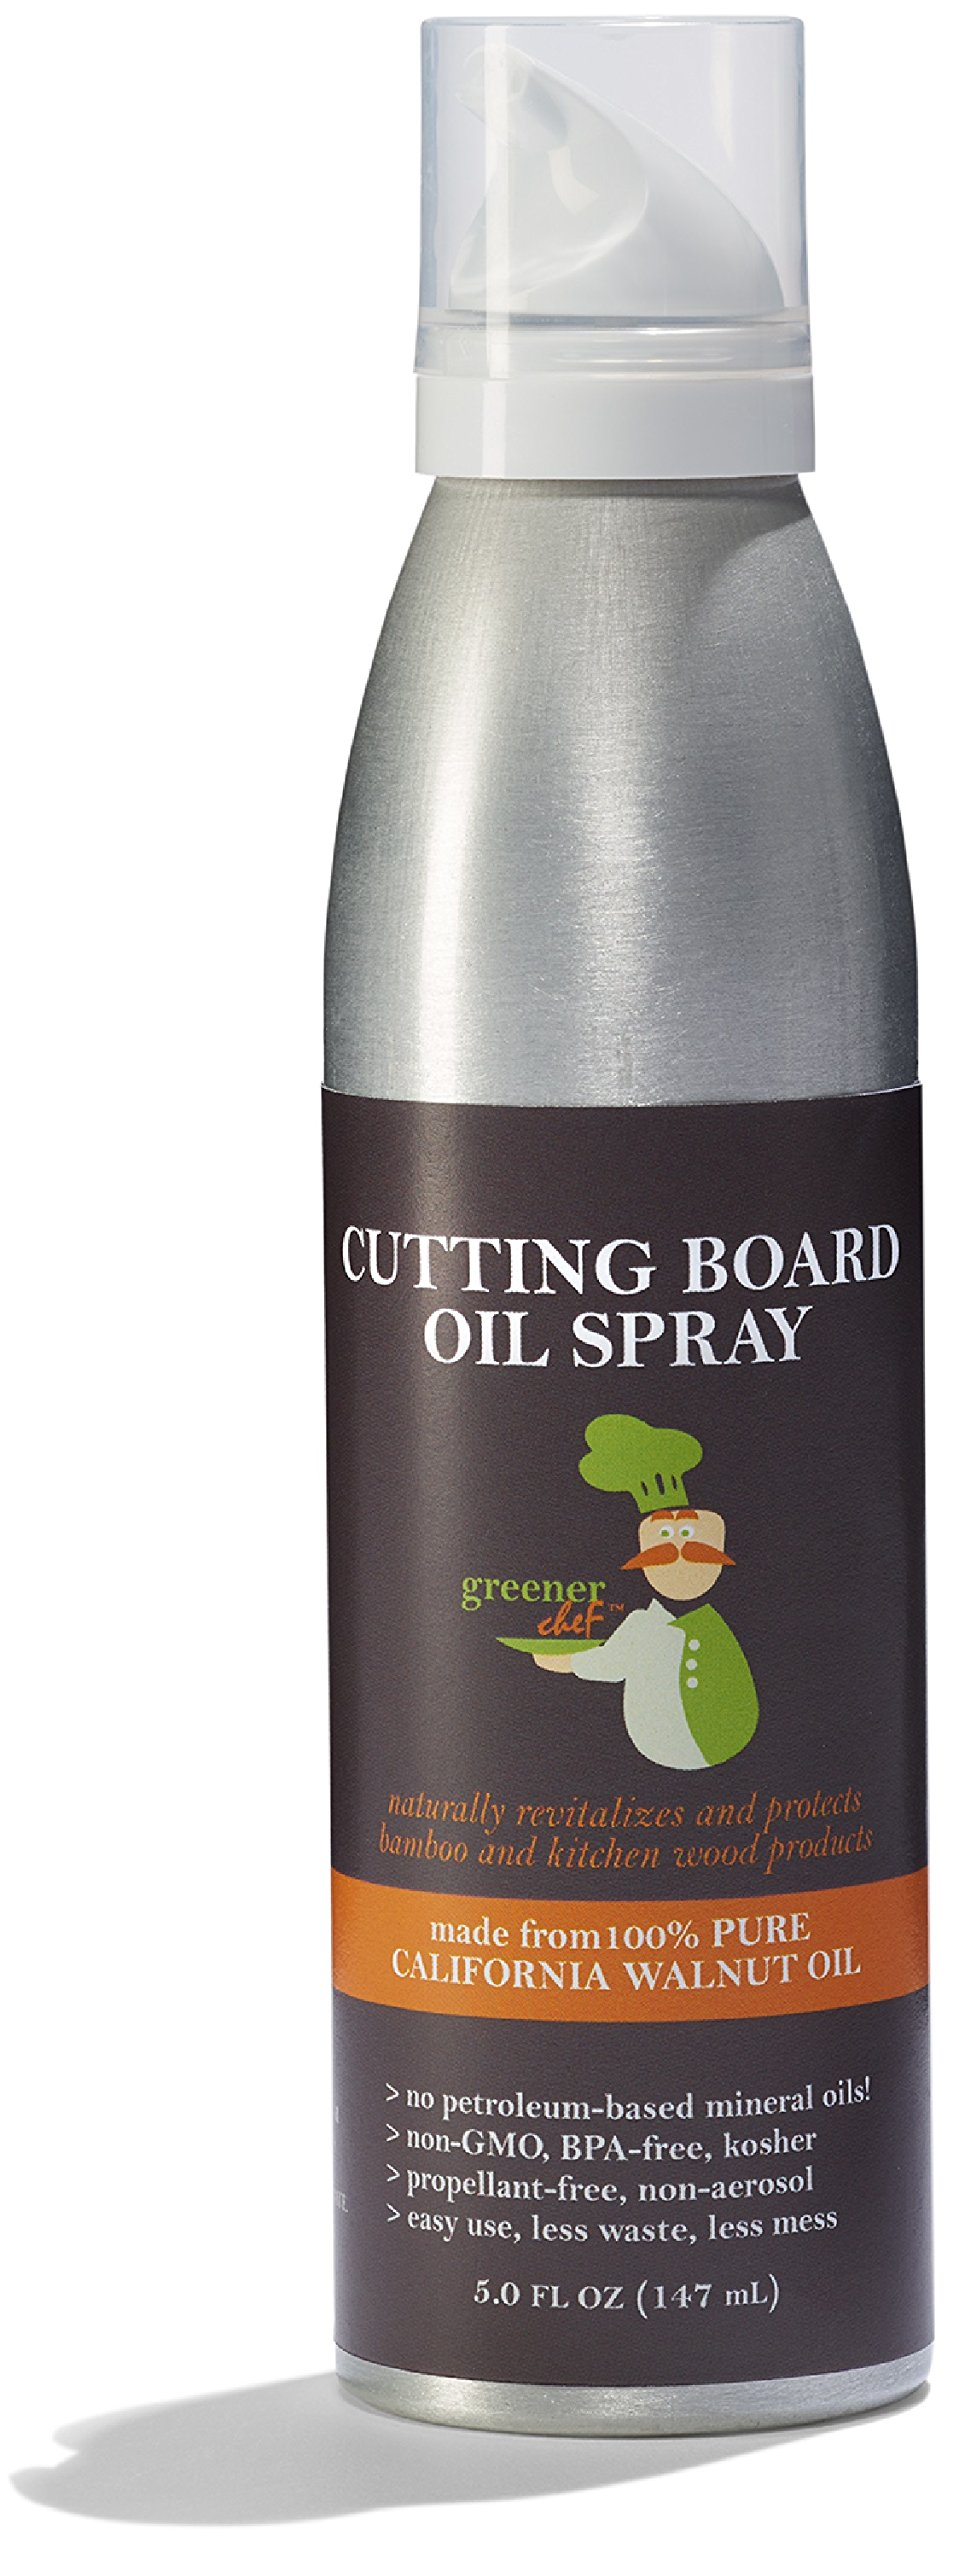 Greener Chef Food Grade Cutting Board Oil Spray and Butcher Block Oil Conditioner - All Natural Walnut Oil for Wood and Bamboo Chopping Boards - No Mess and Low Waste Spray - Made in USA by Greener Chef